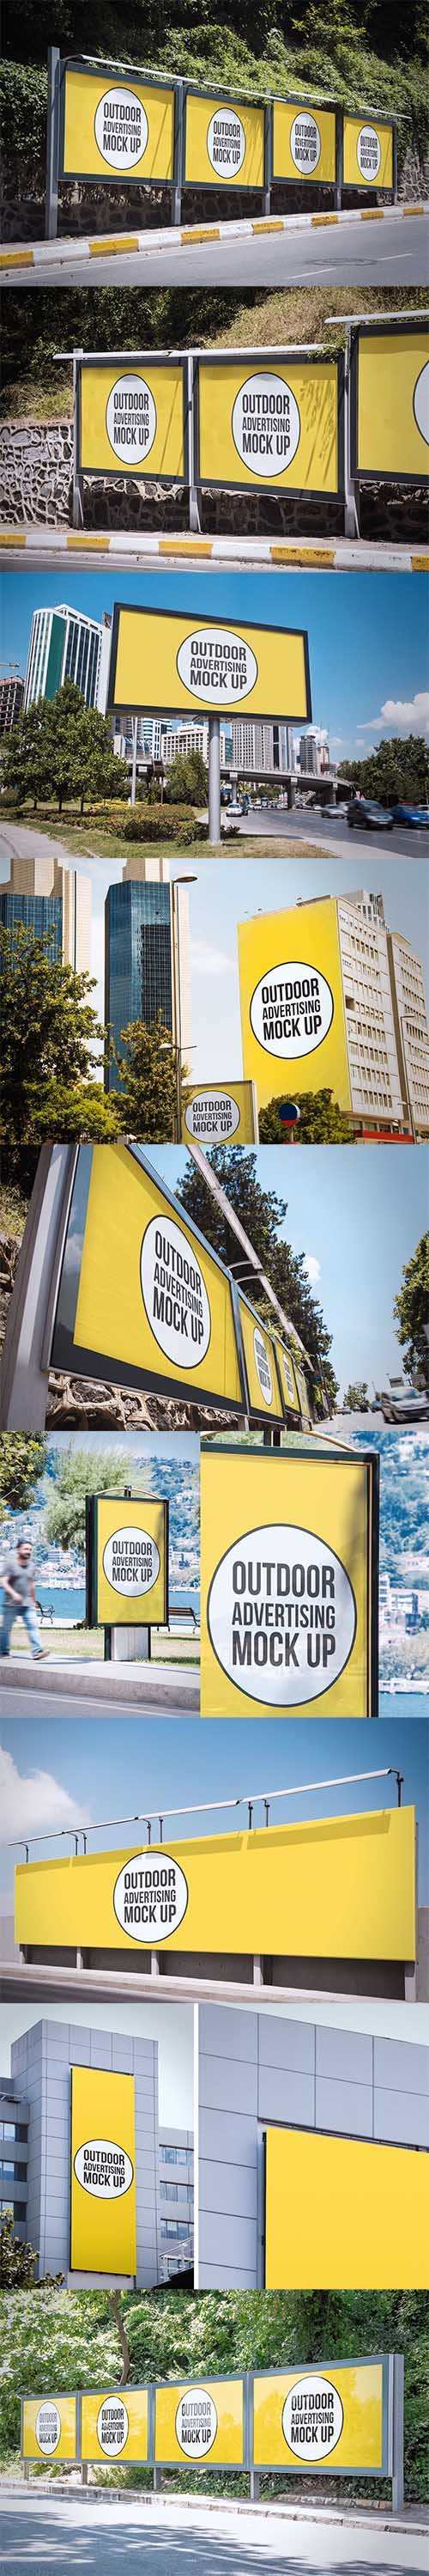 Outdoor Advertisement Mockup Template PSD